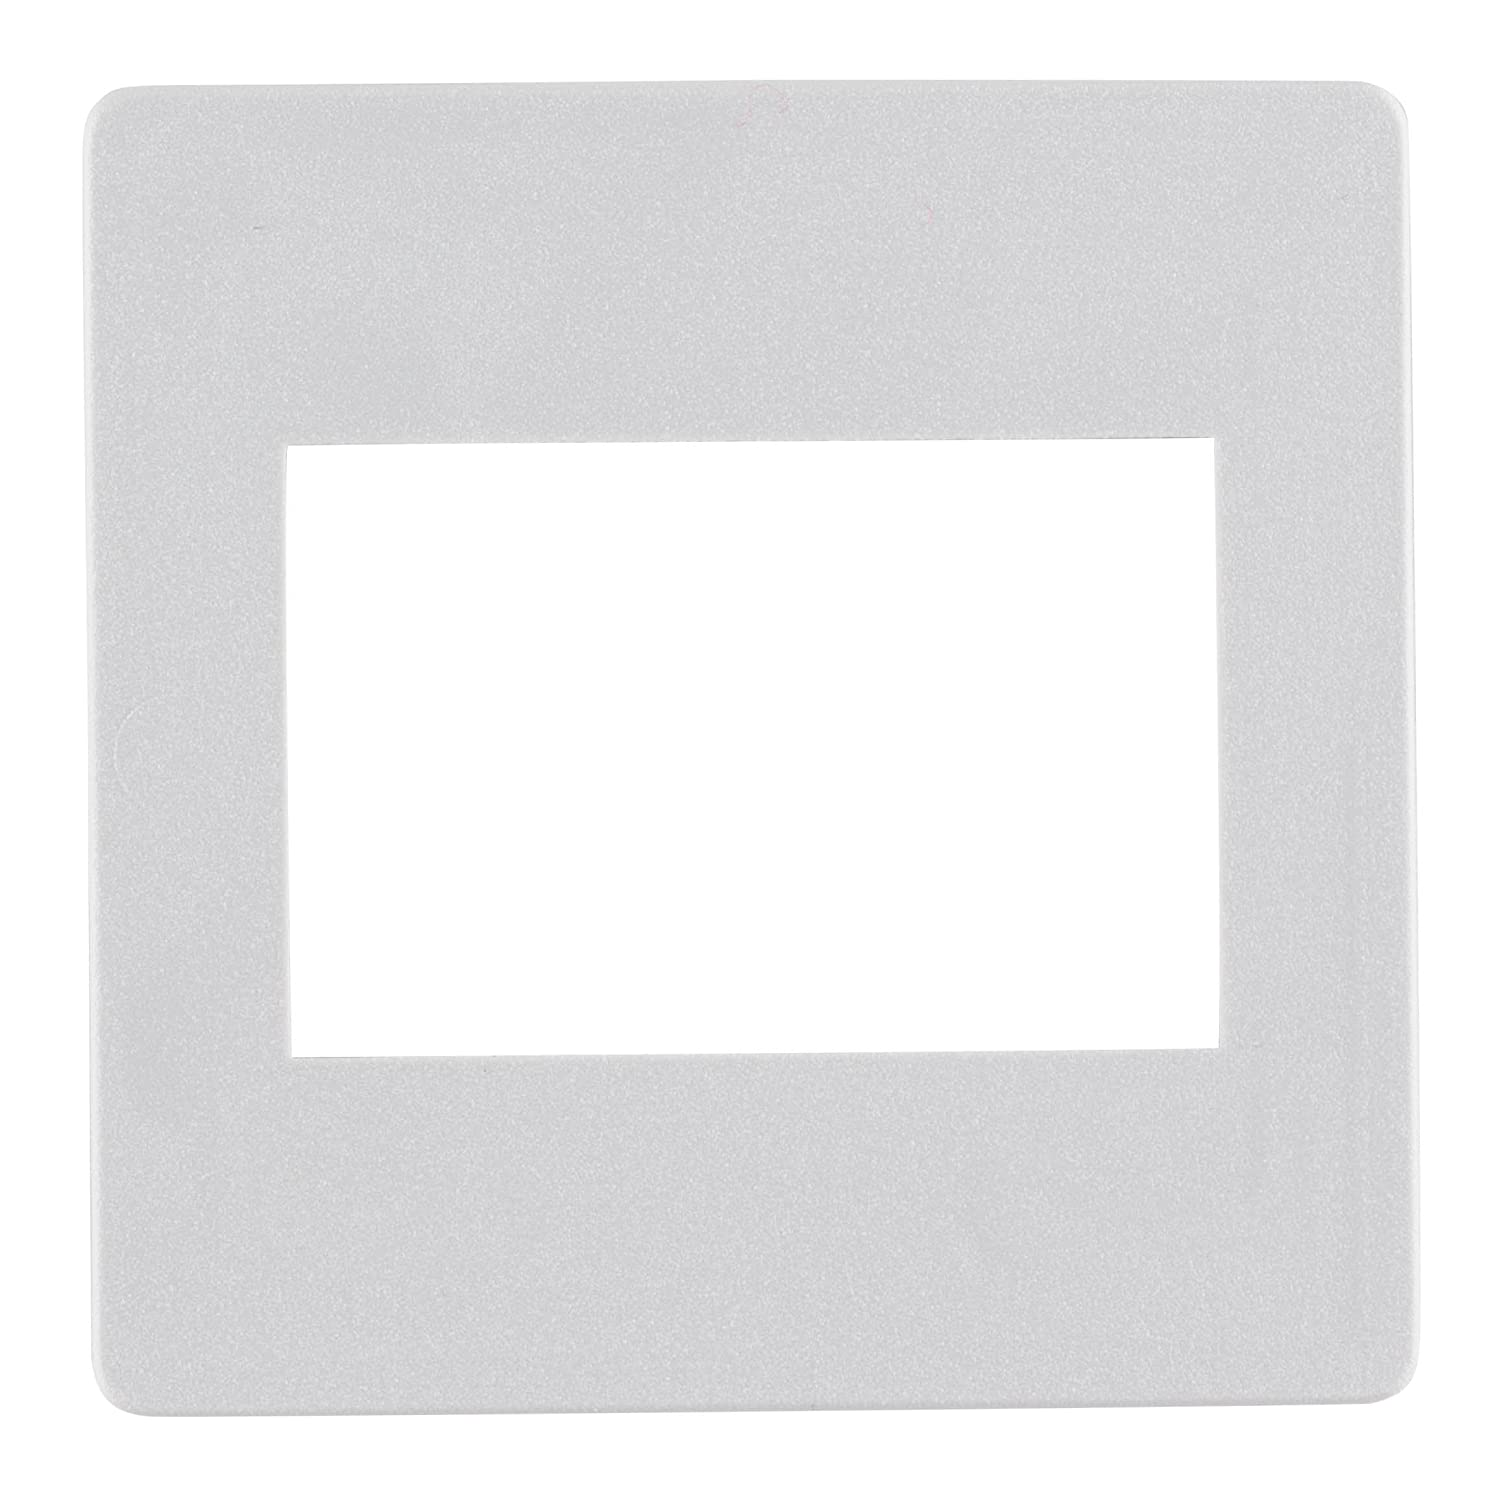 Gepe 457001 35mm Glassless Slide Mount, 2mm Thick, 100 Pack (White)